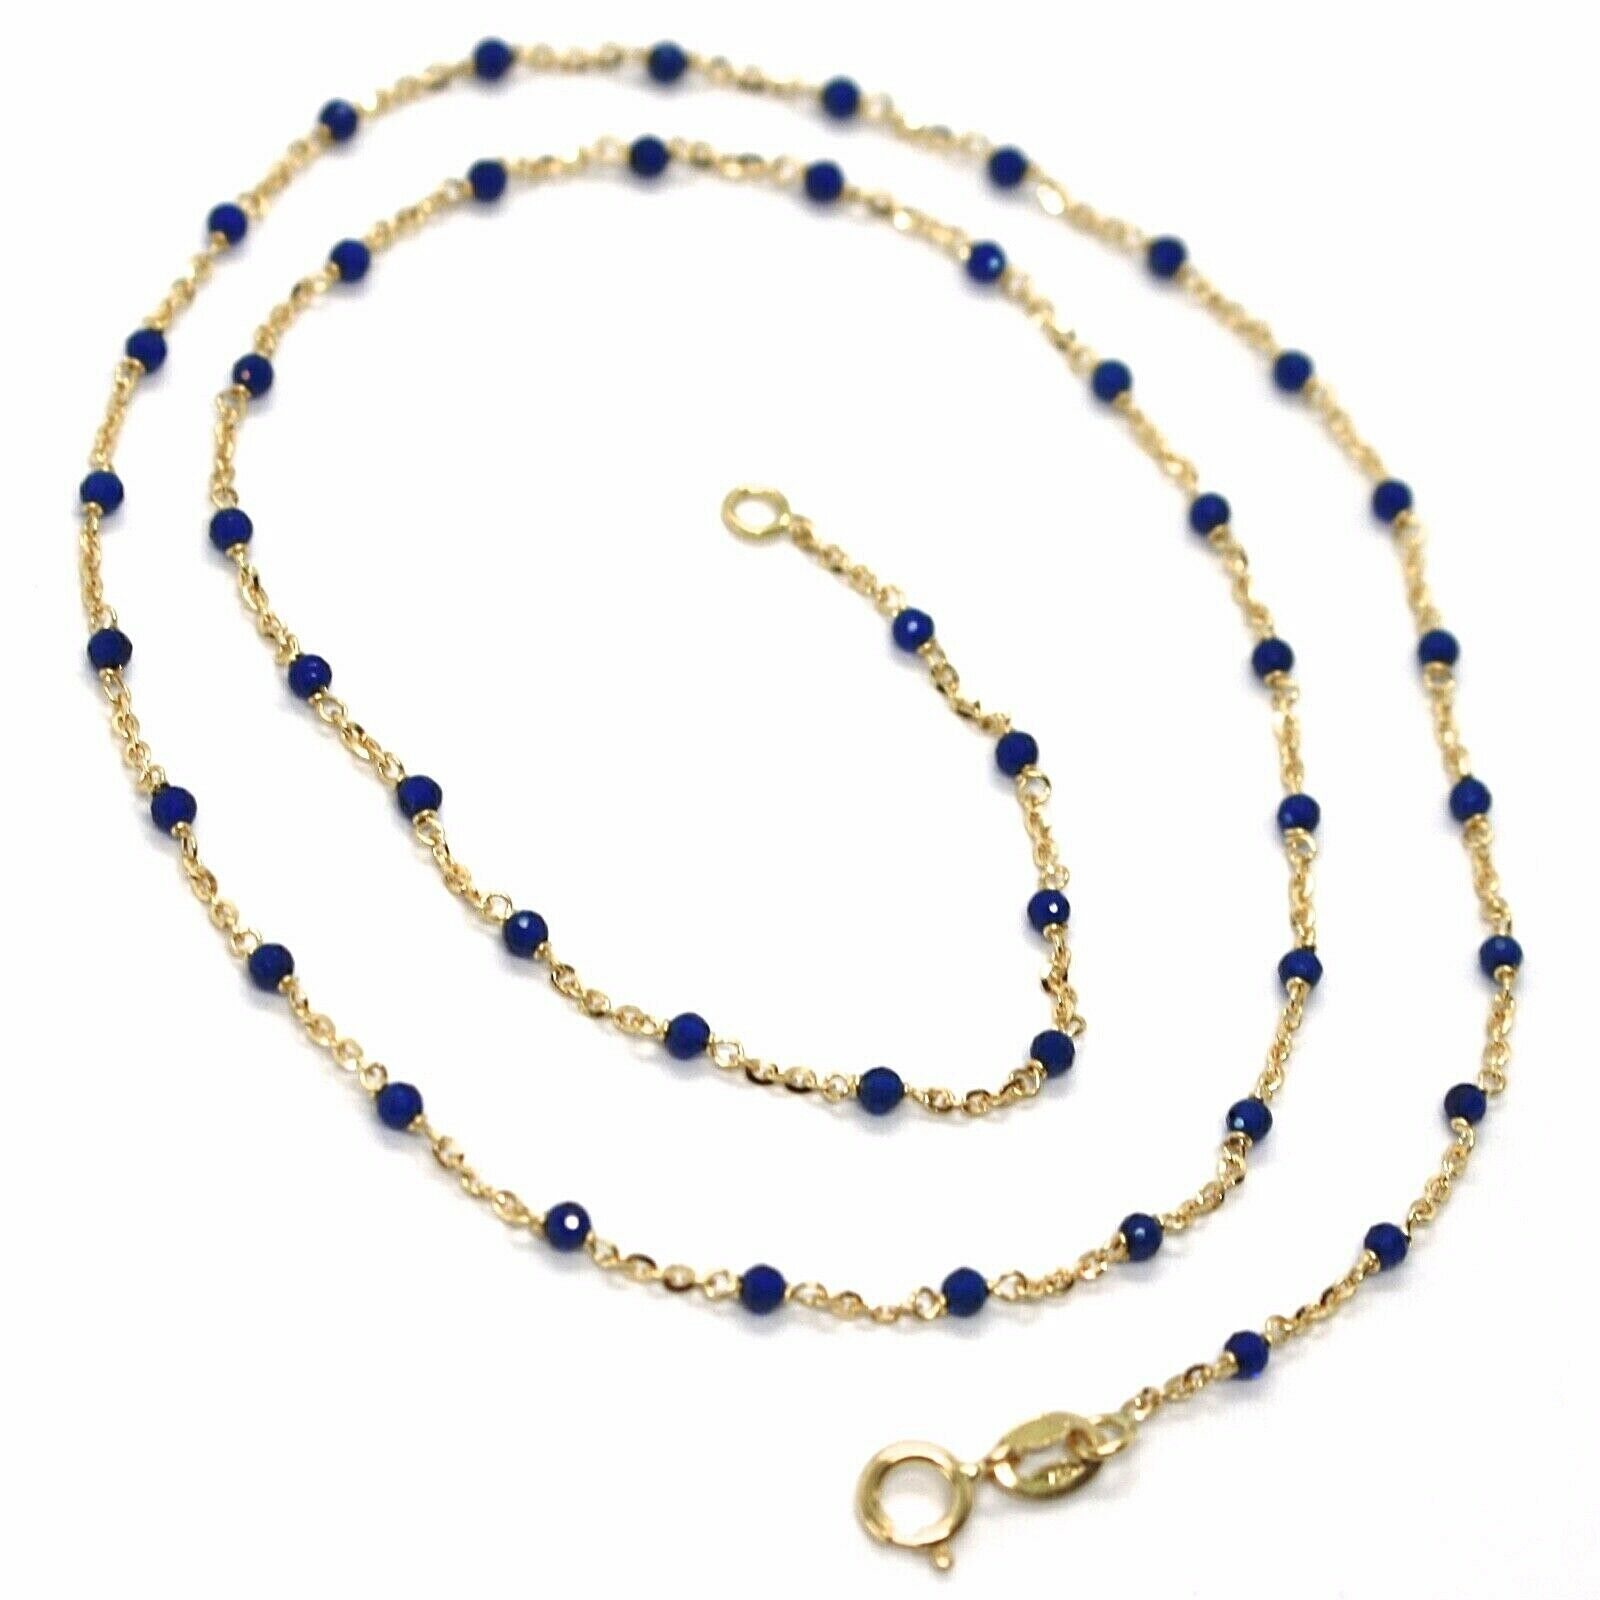 18K YELLOW GOLD NECKLACE, BLUE FACETED CUBIC ZIRCONIA, ROLO CHAIN, 17.7 INCHES